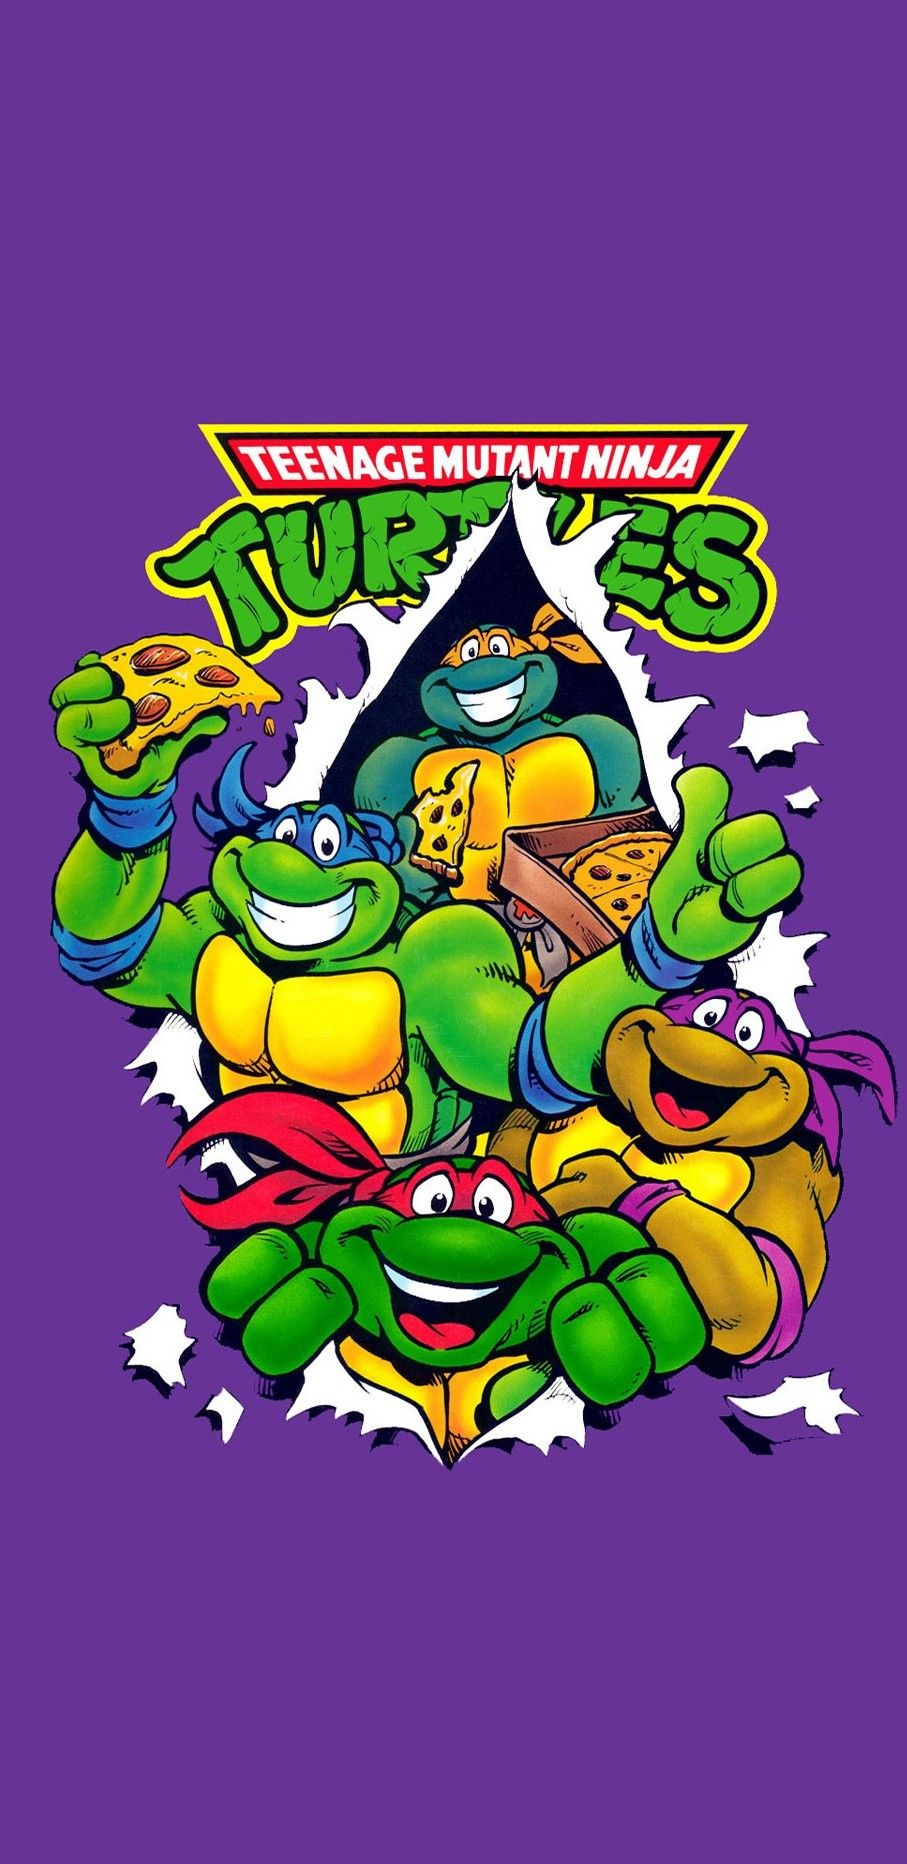 Teenage Mutant Ninja Turtles wallpaper Turtle wallpaper